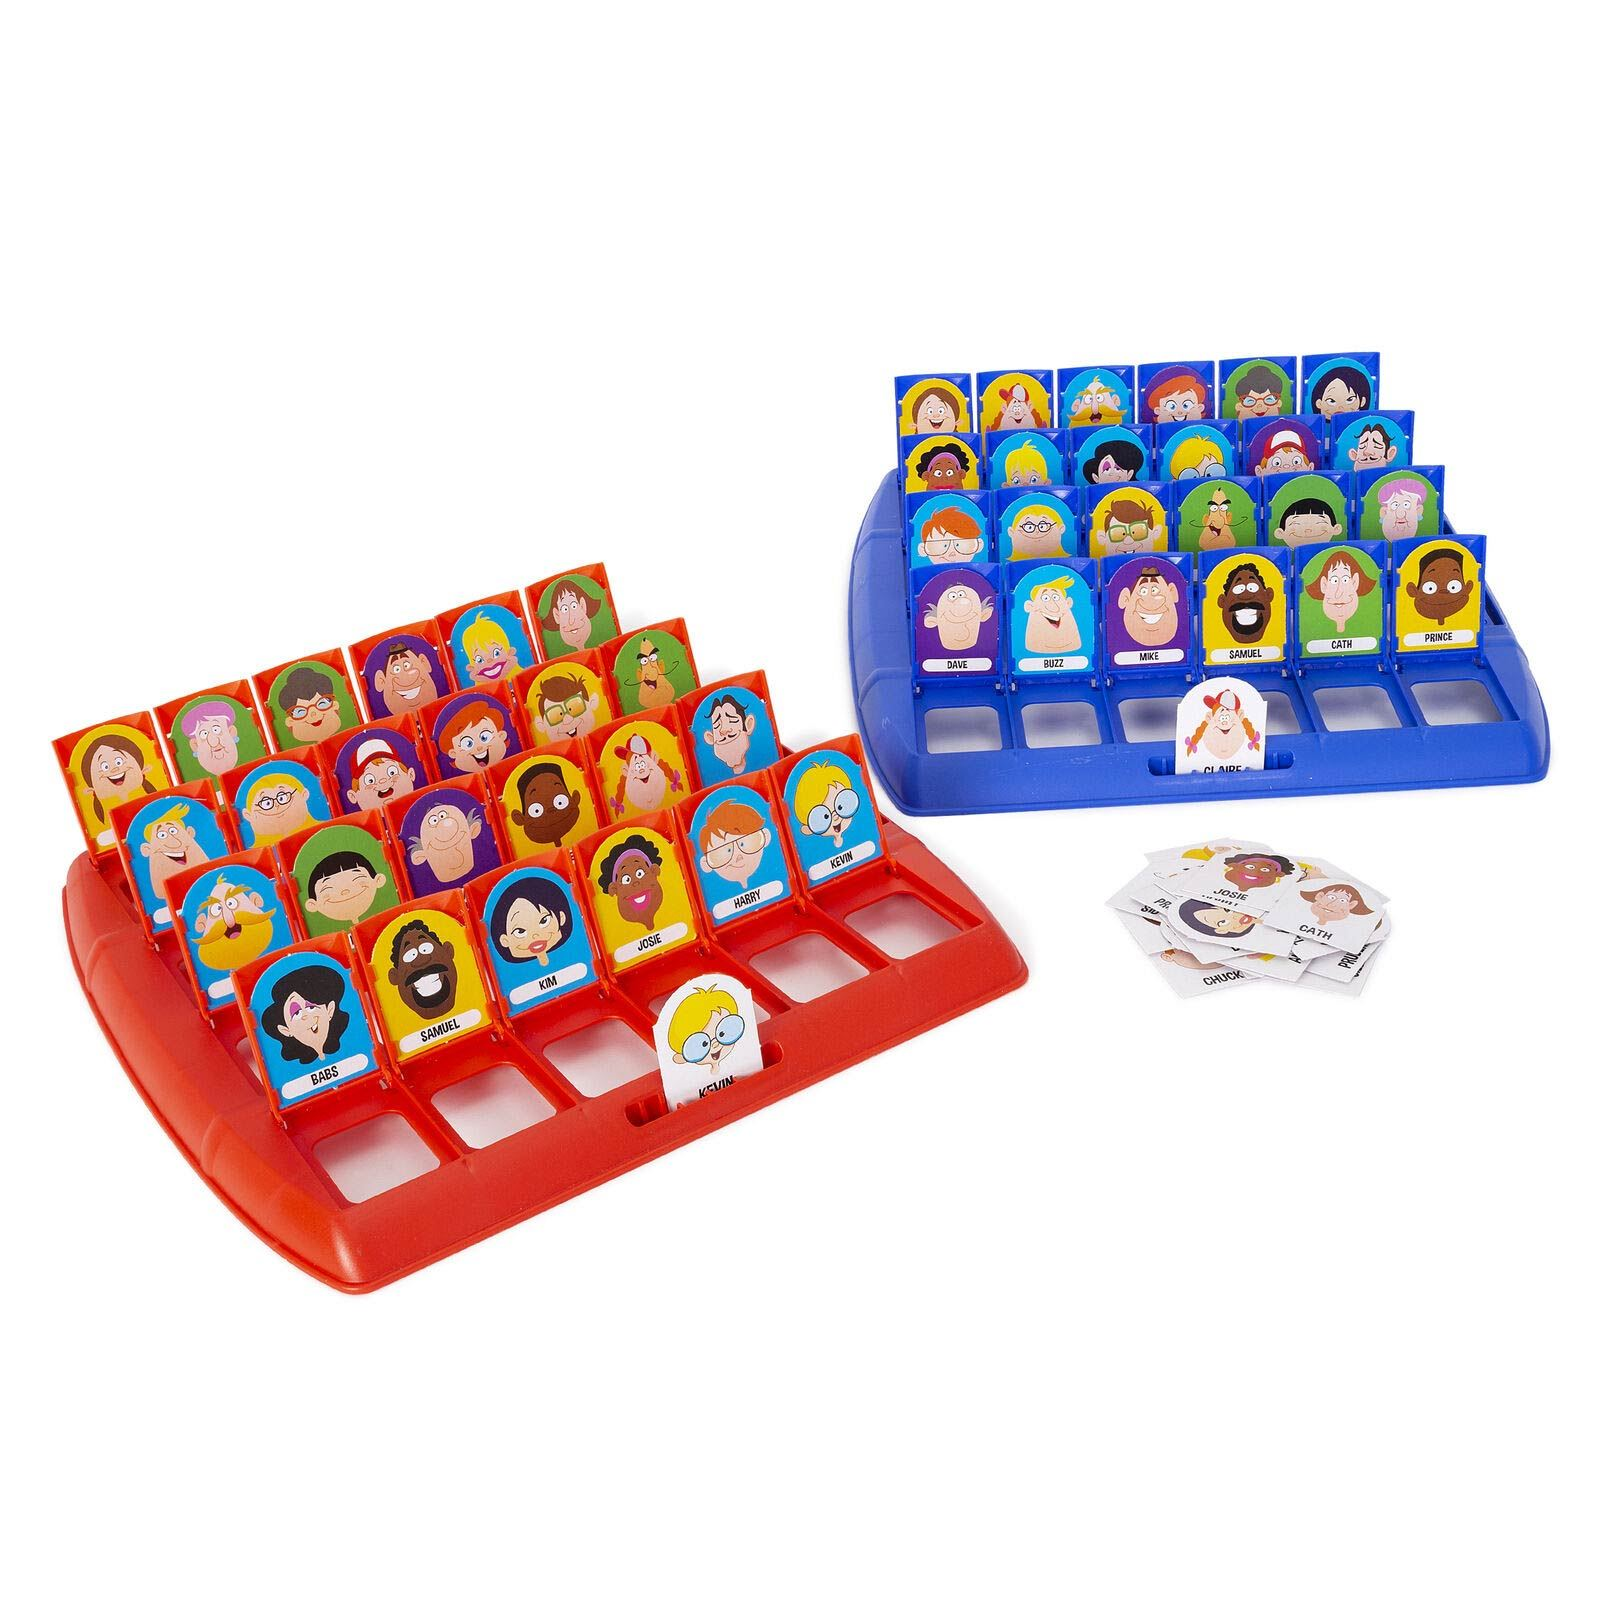 GUESS WHO WHATS THEIR NAME BOARD GAME TRADITIONAL CLASSIC KIDS FAMILY GIFT TOYS